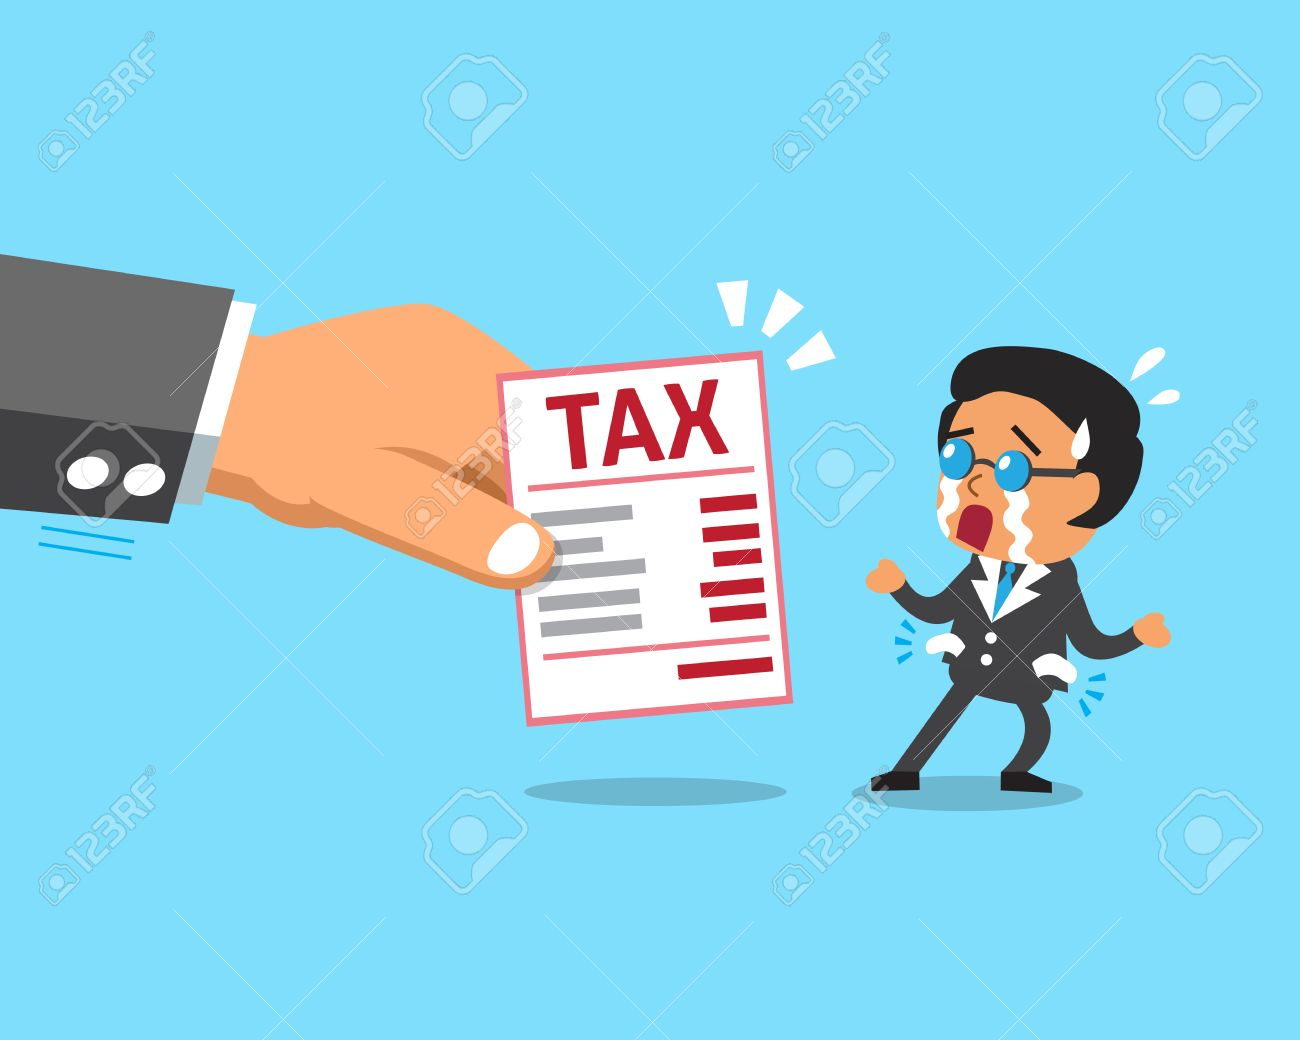 cartoon businessman does not have money to pay tax royalty free